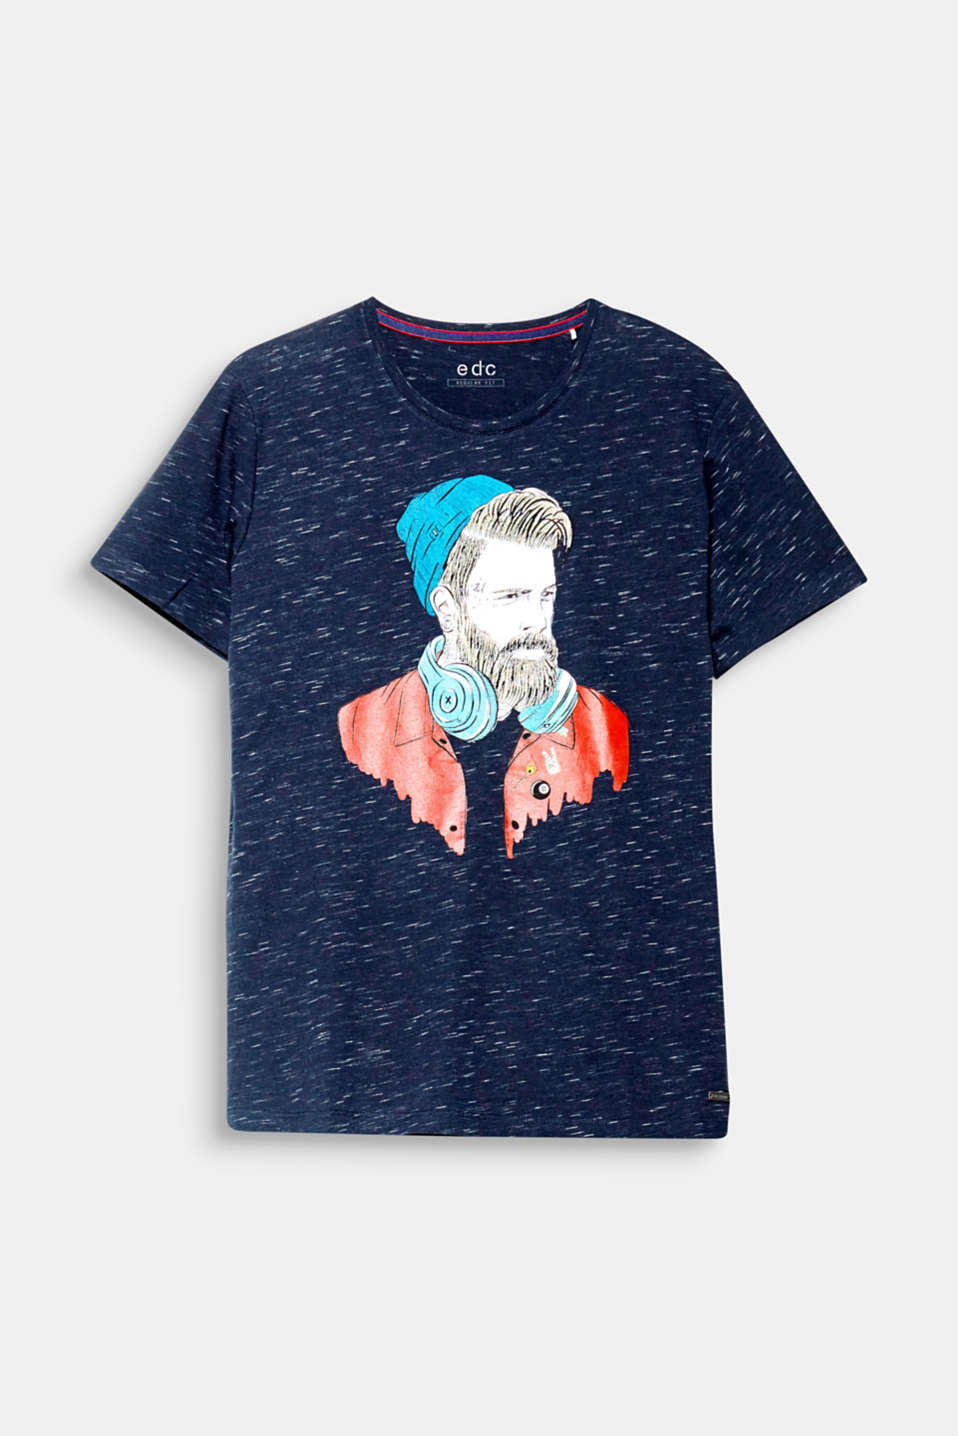 Hip edc illustrations are practically a cult classic! This bold print makes this T-shirt one of a kind.